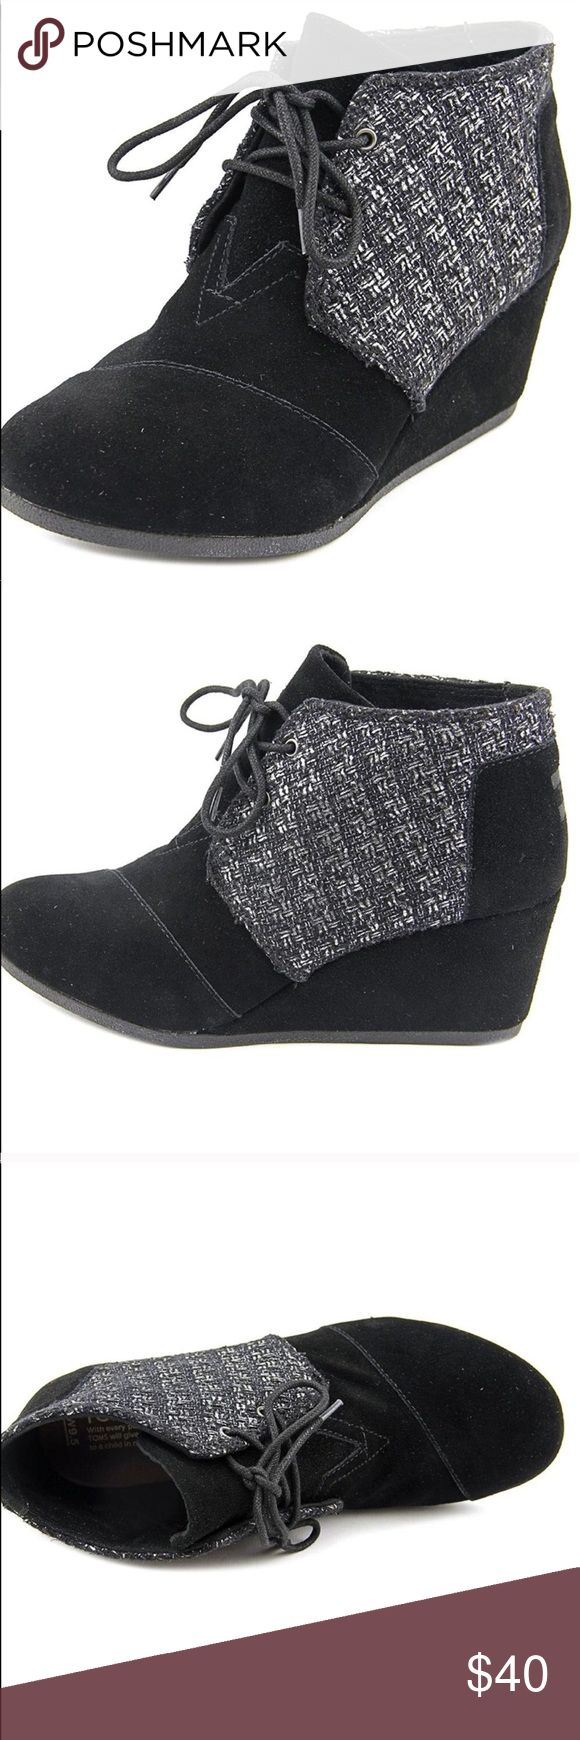 Toms Desert Wedge Booties - Black and silver Excellent (like new) condition Desert Wedge booties by toms. I don't know if these have actually ever been worn or not. I believe they were only tried on. Regardless, these are in perfect condition and have the cutest subtle silver design on the back half of the shoes. If you have any other toms, you already know how comfortable these boots are! Get them at this hot off season price while you can! Let me know if you have any questions! TOMS Shoes…